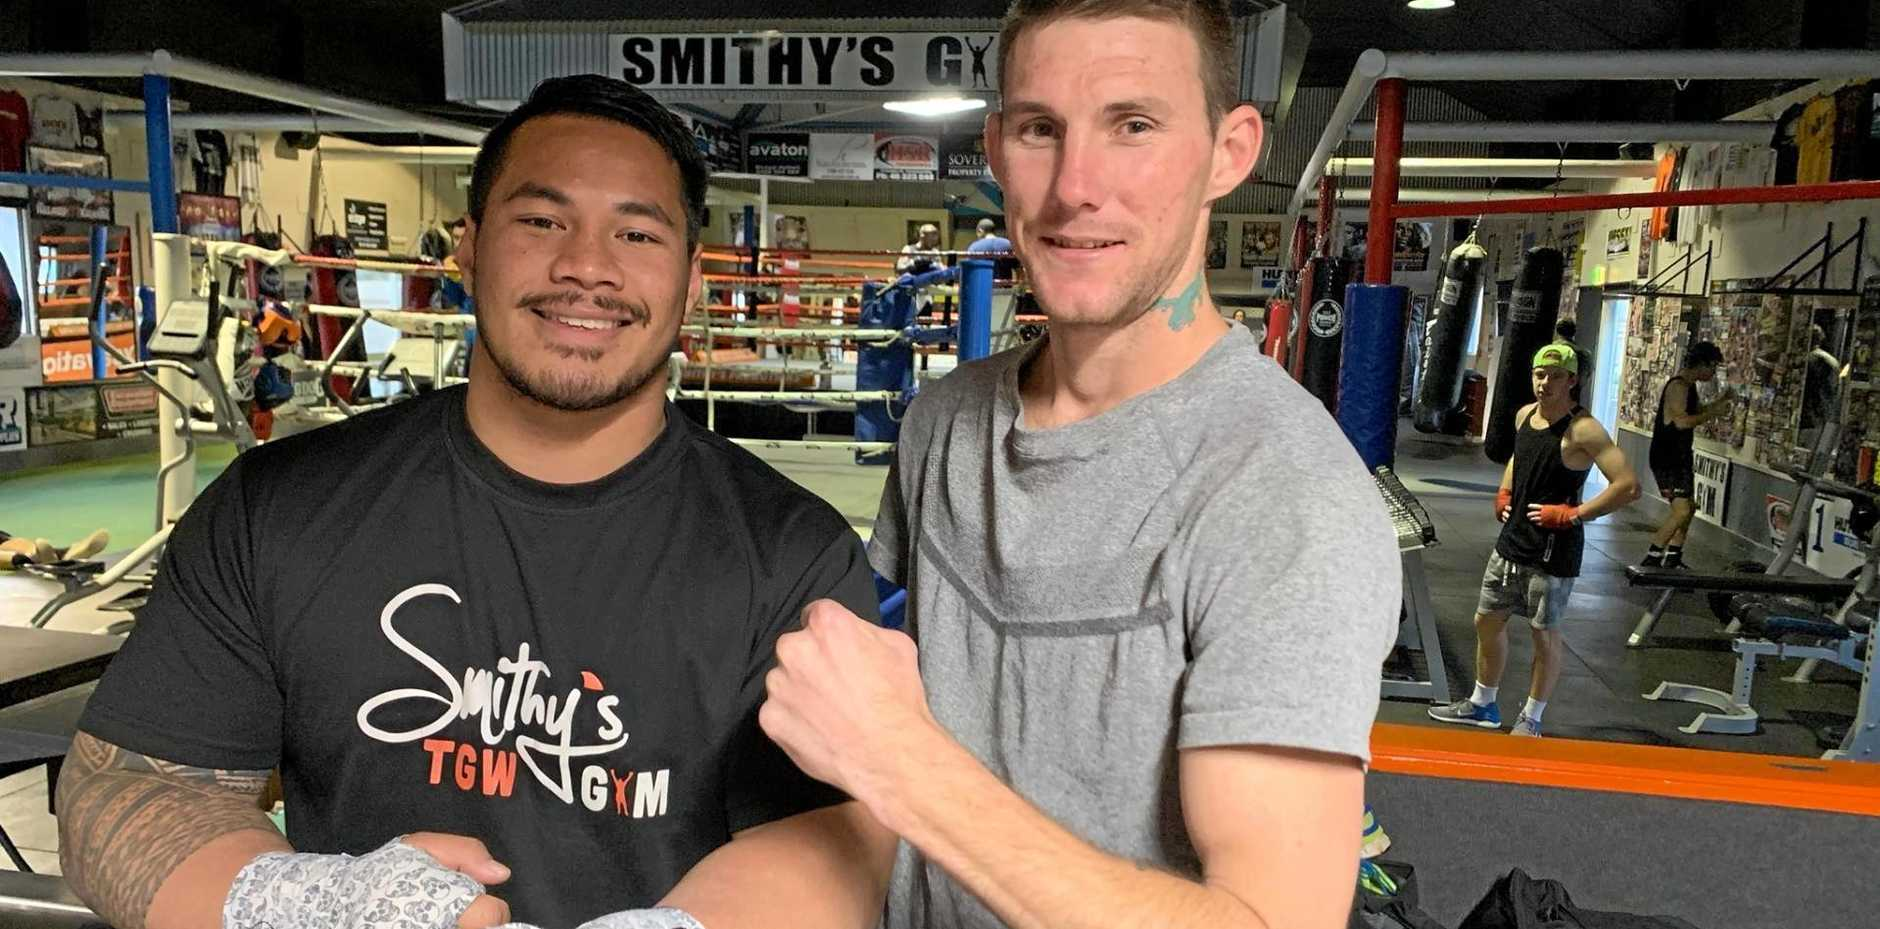 TGW & Smithy's Gym team members Herman Ene-Purcell (left) and Brent Moore.